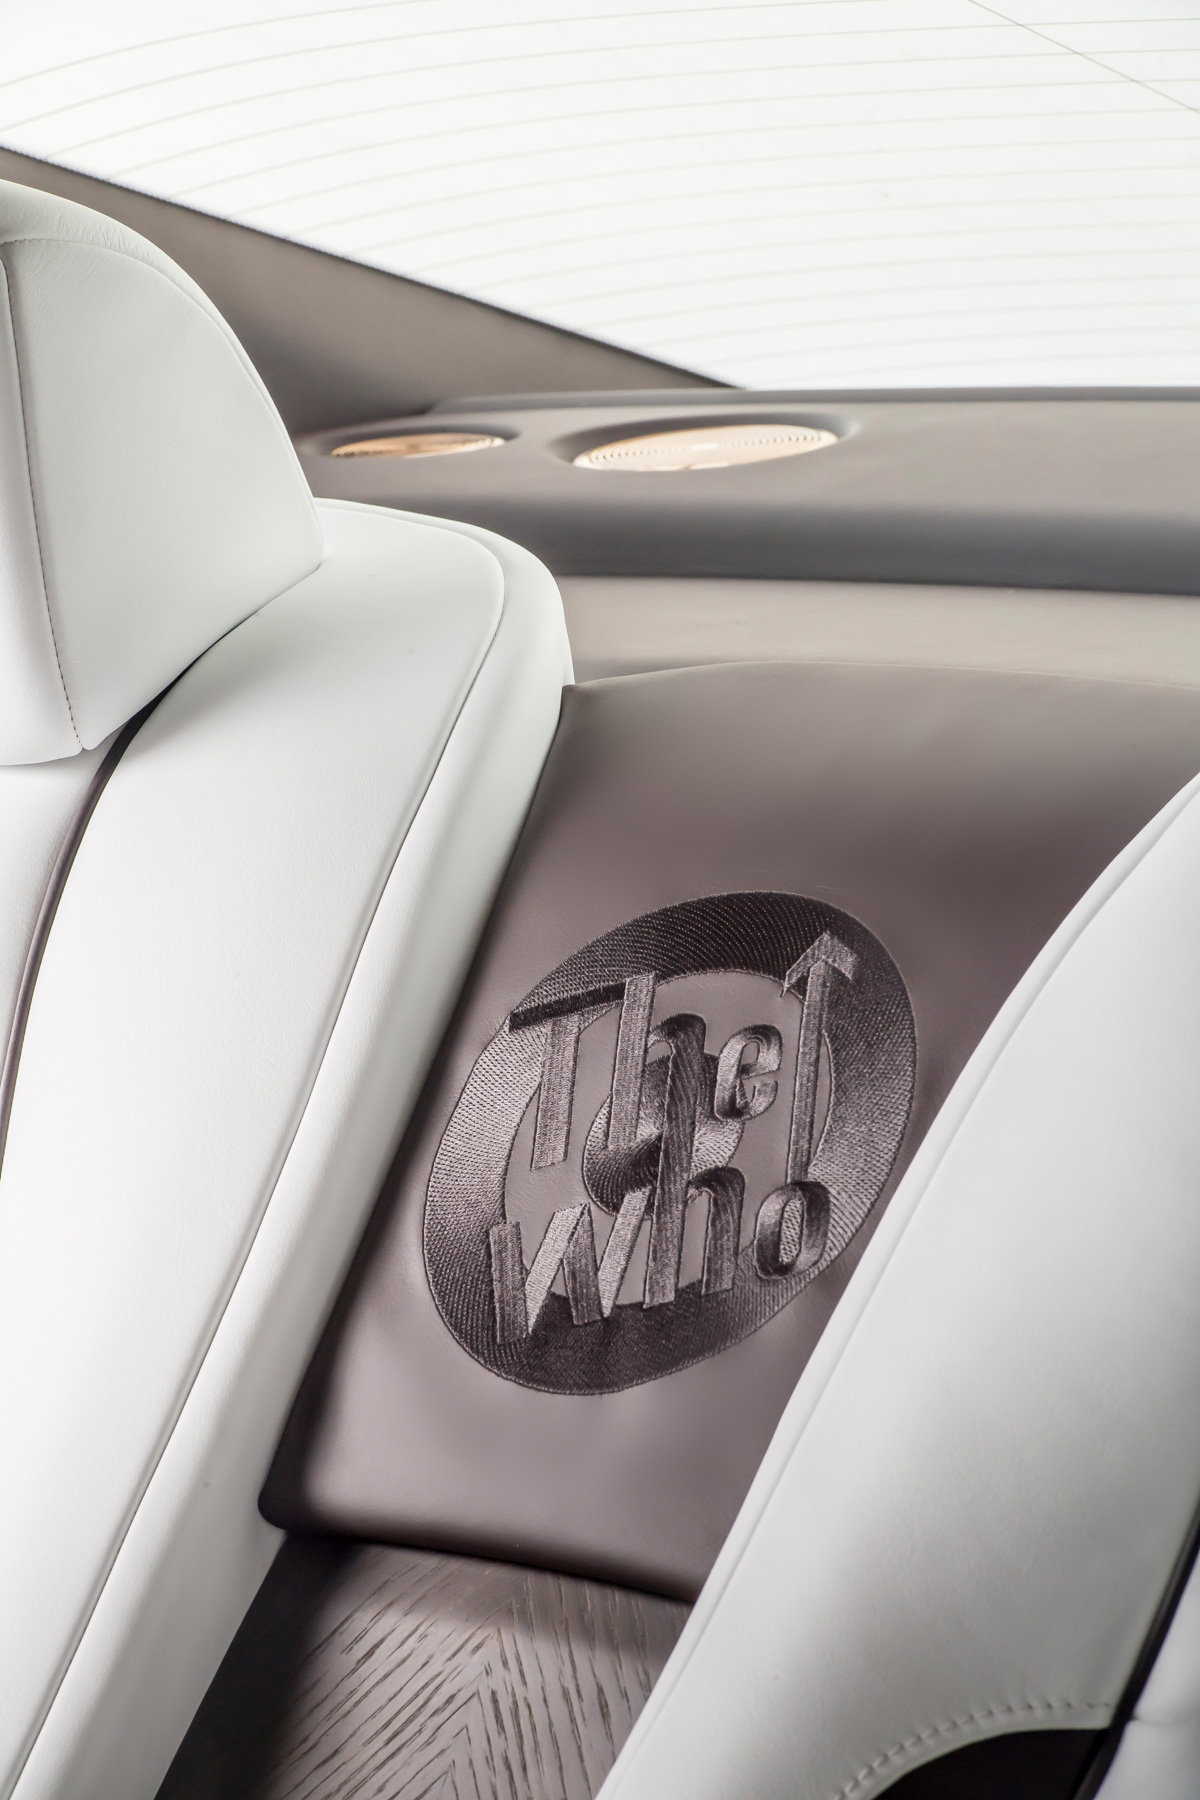 Rolls-Royce X British Music Legends for Bespoke Wraith Series 17